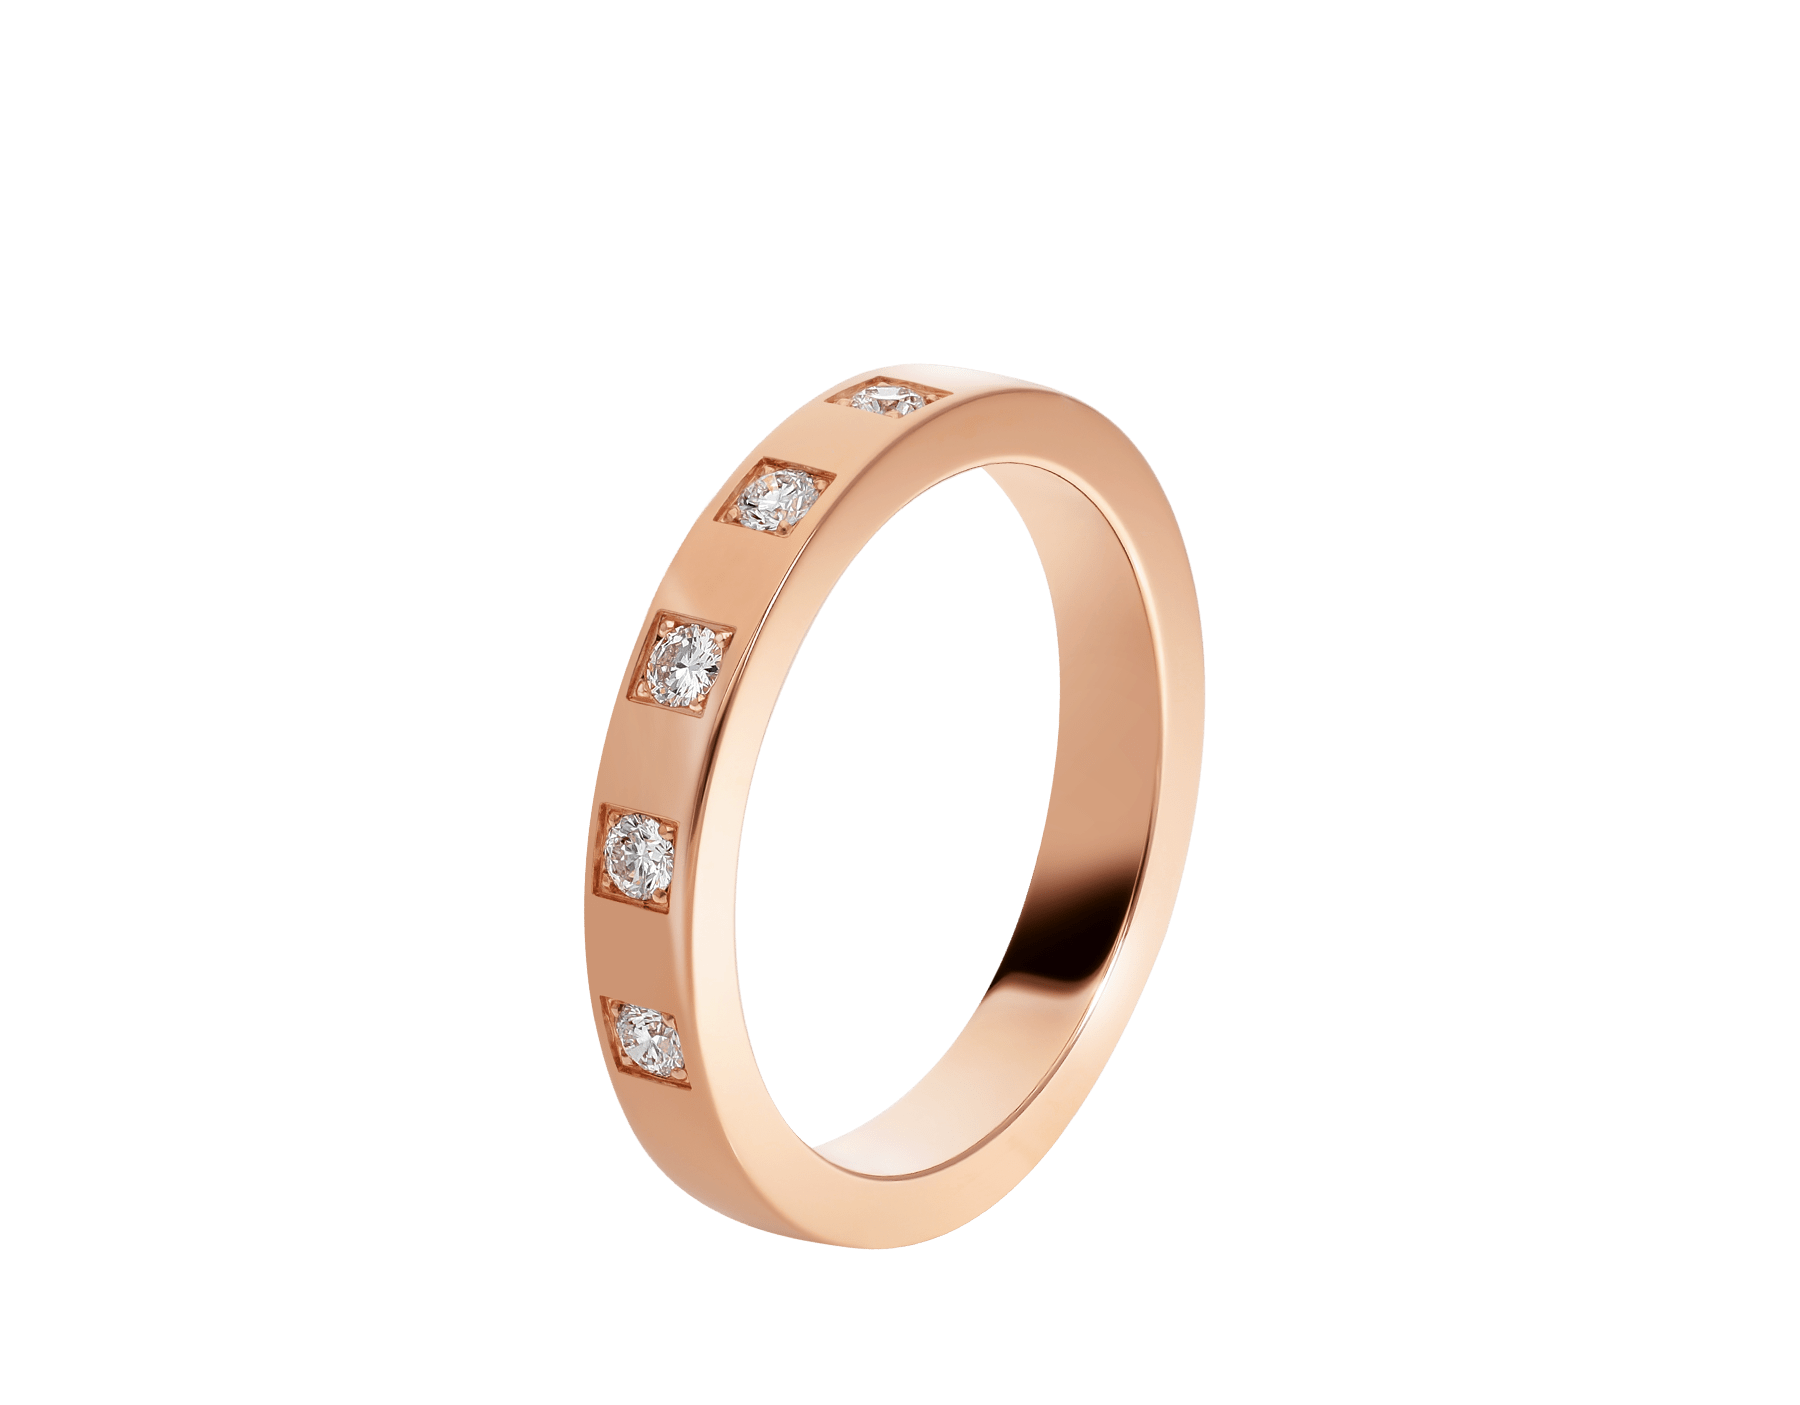 MarryMe 18 kt rose gold wedding band set with five diamonds AN858412 image 1